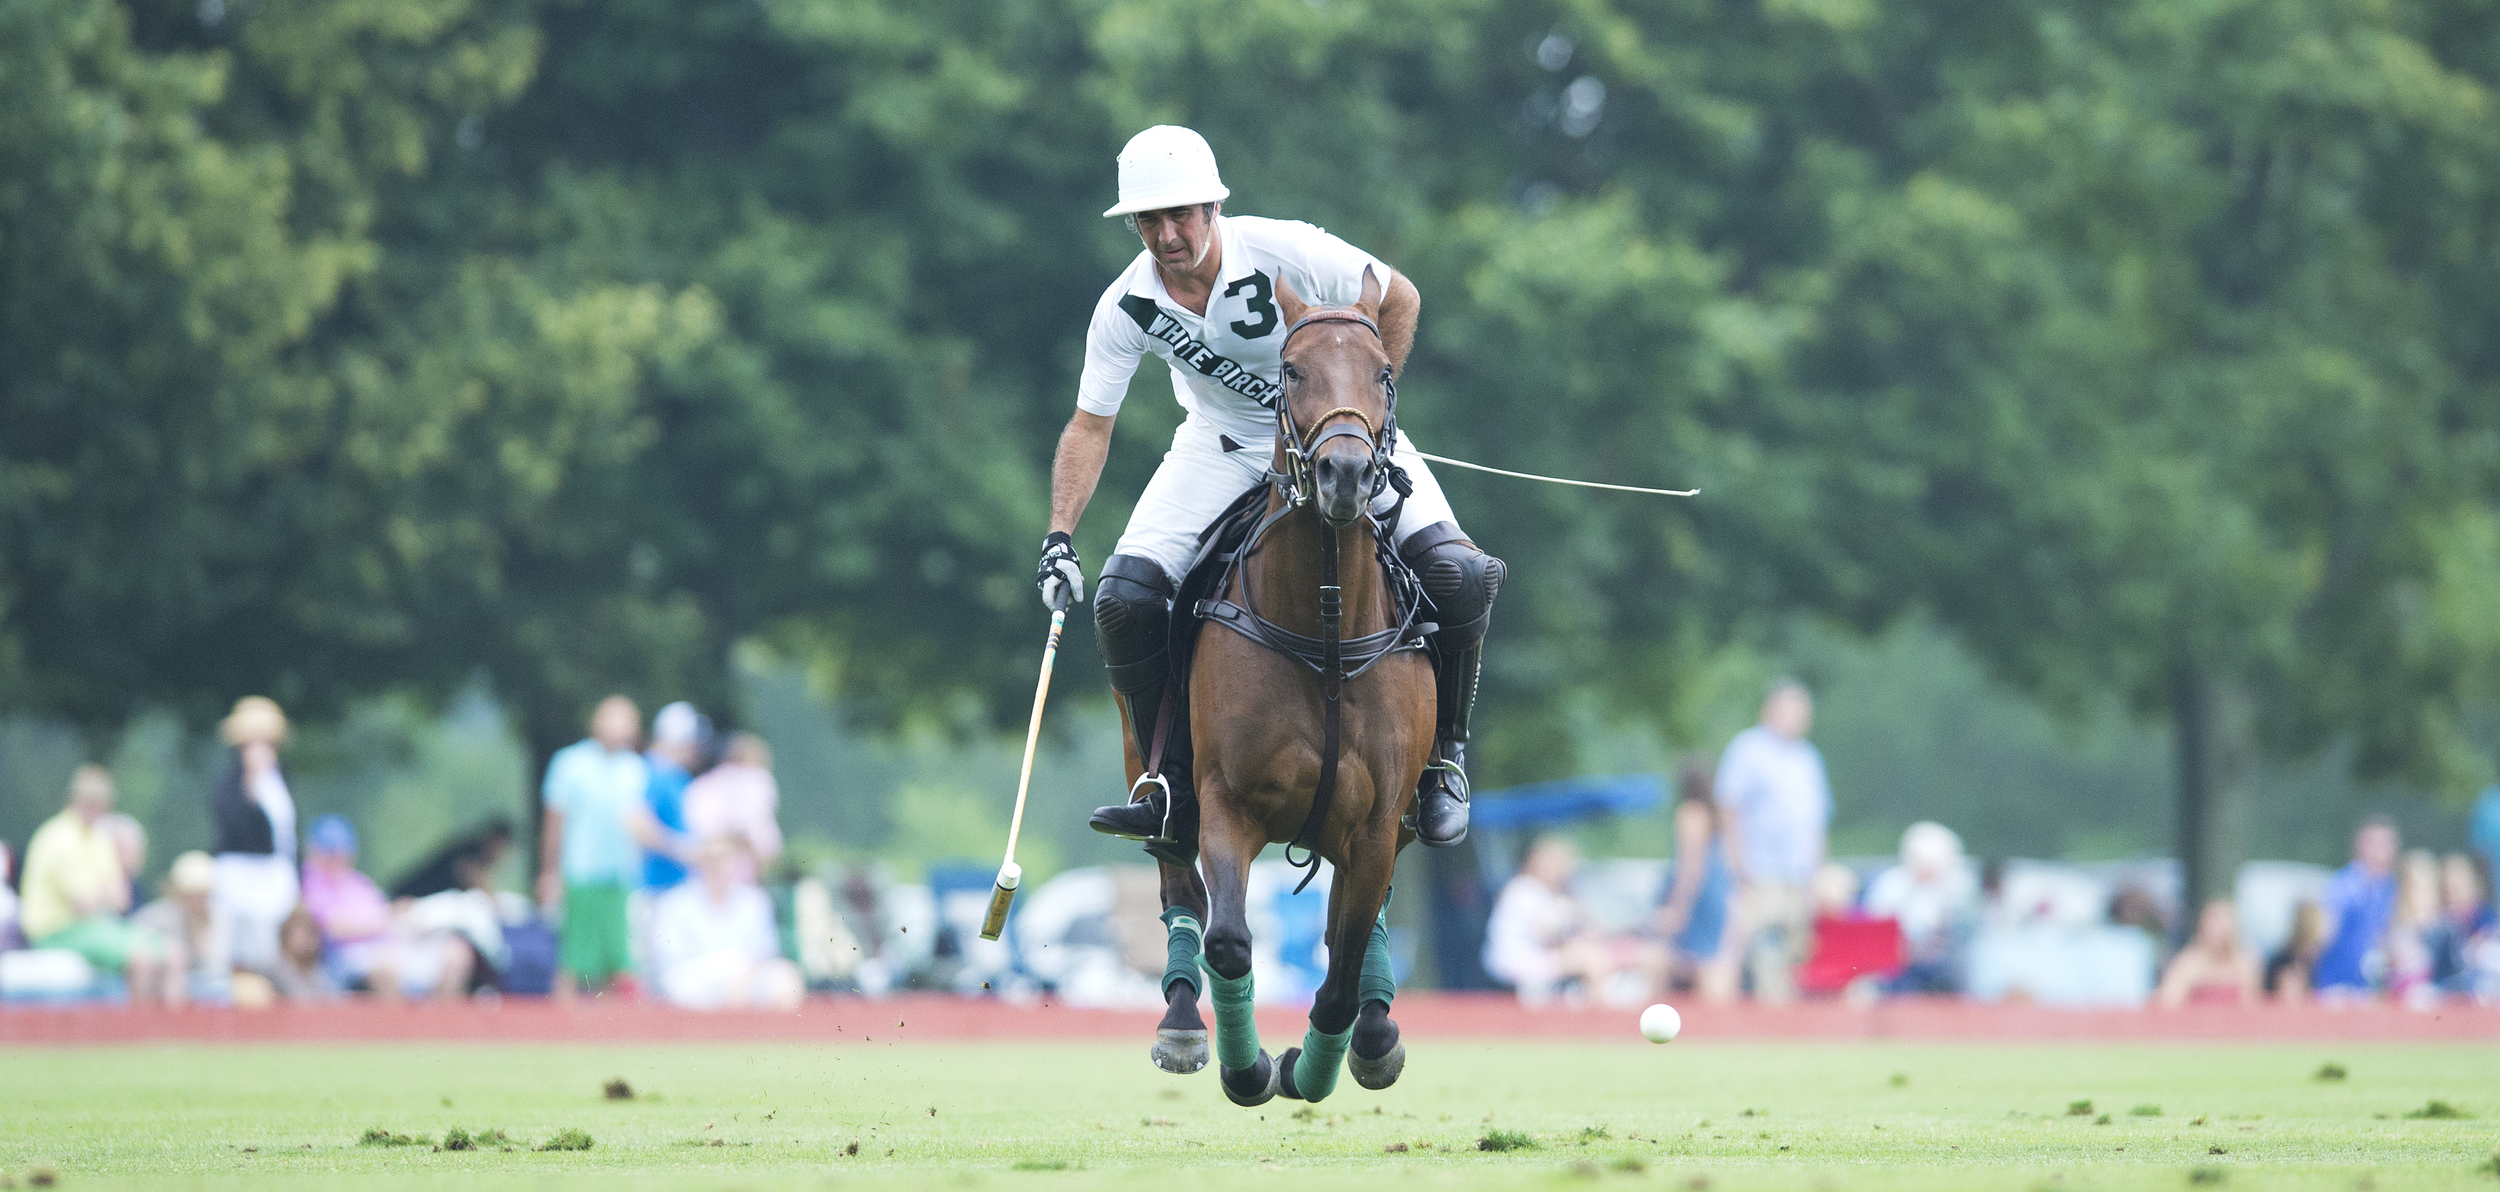 Polo great Mariano Aguerre in action. He'll be playing Sunday, June 1 for the White Birch home team at the Greenwich Polo Club. Photograph by Dan Burns. Courtesy the club